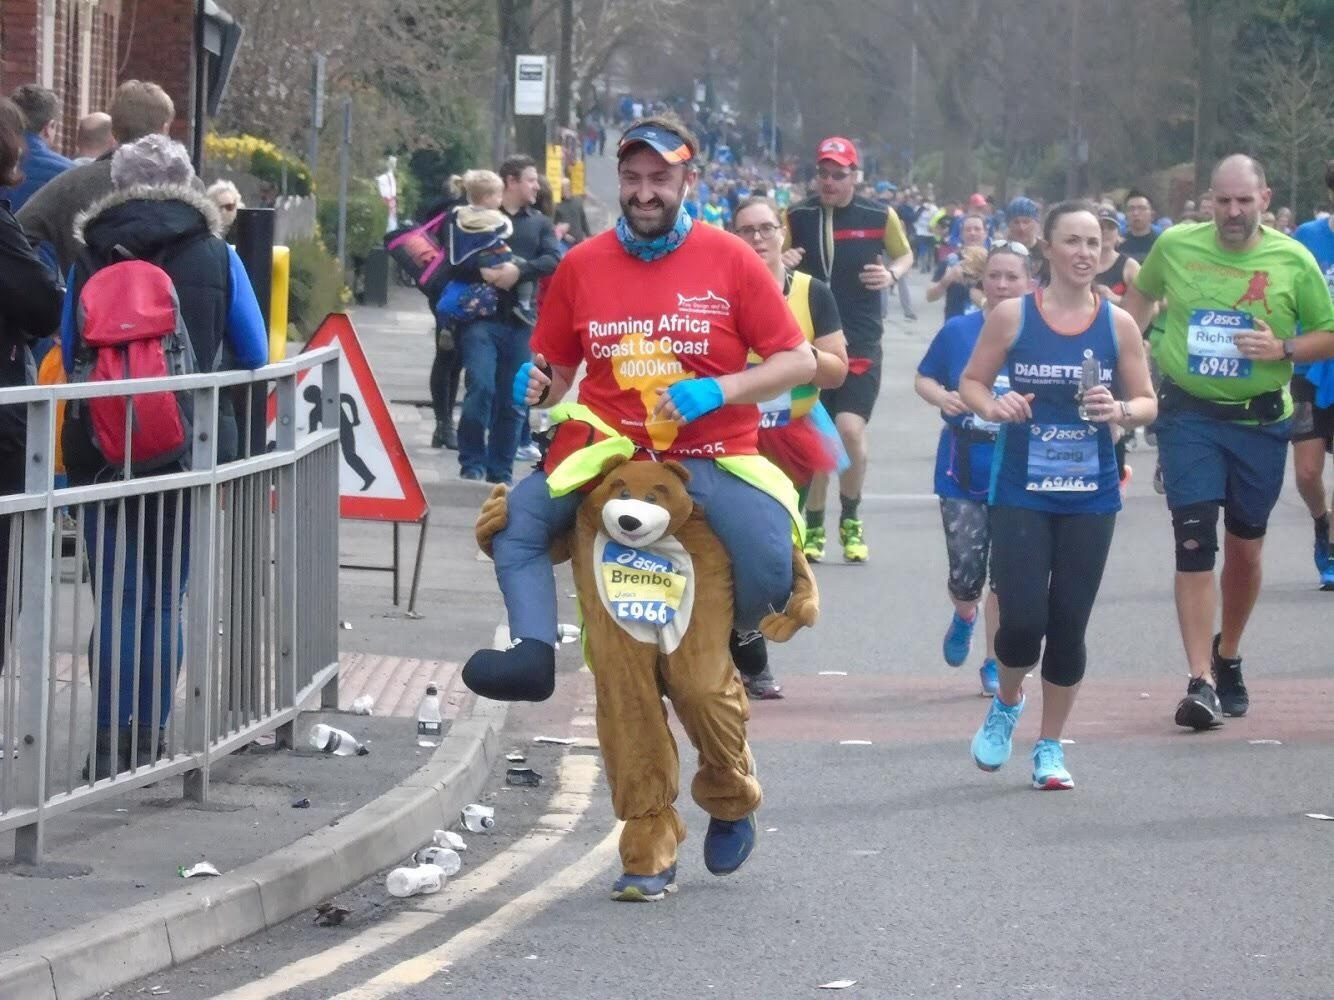 Runners take part to help good causes. Picture: Darren Marsden